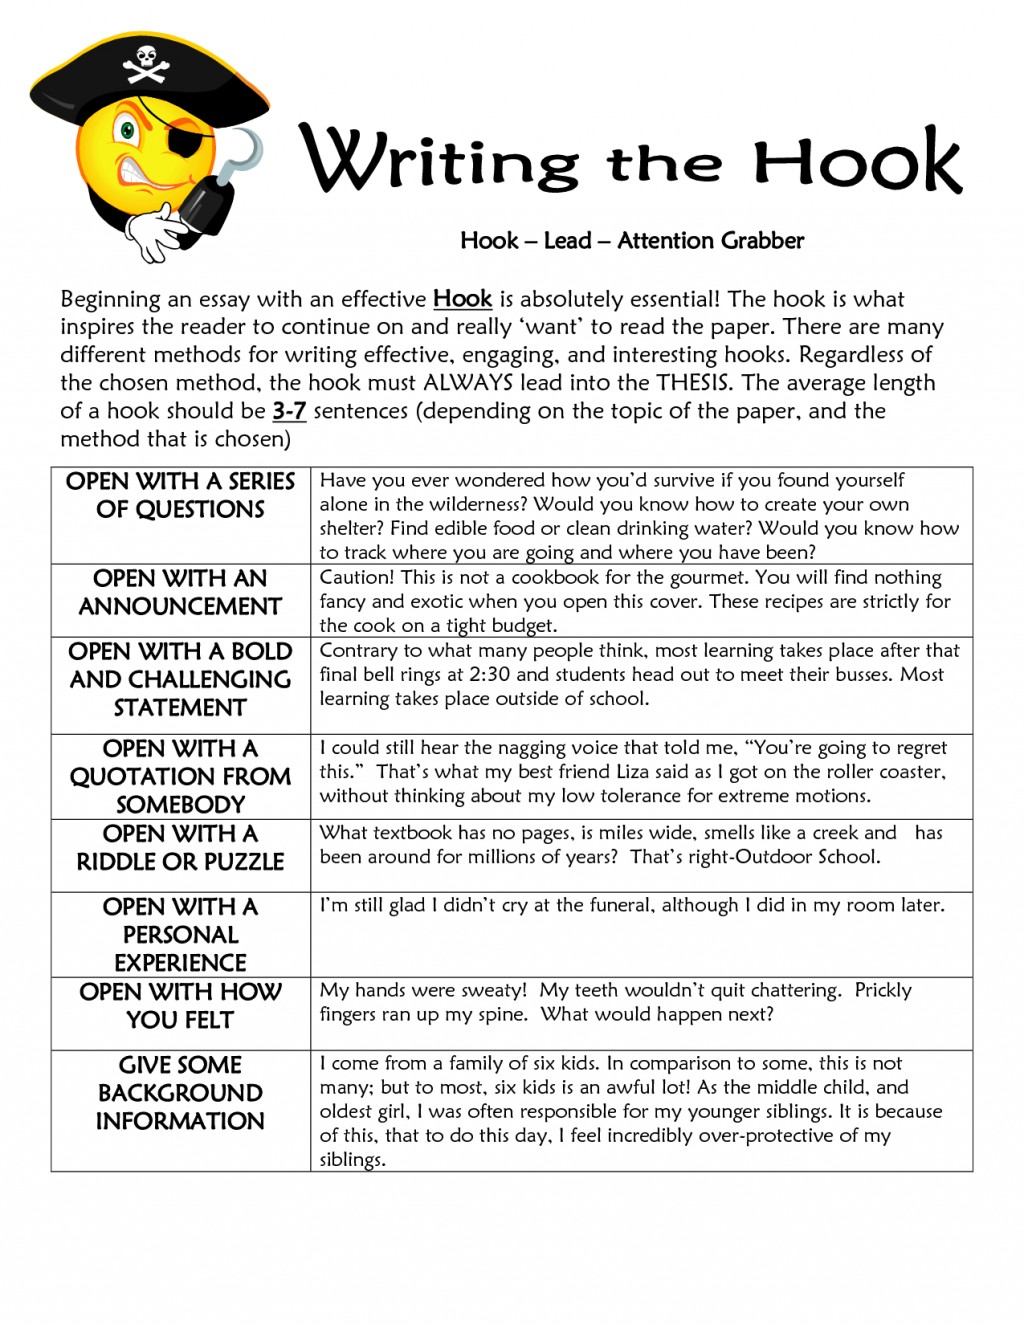 001 Hooks For Essays Essay Stupendous About Love Examples Of High School Good Narrative Large